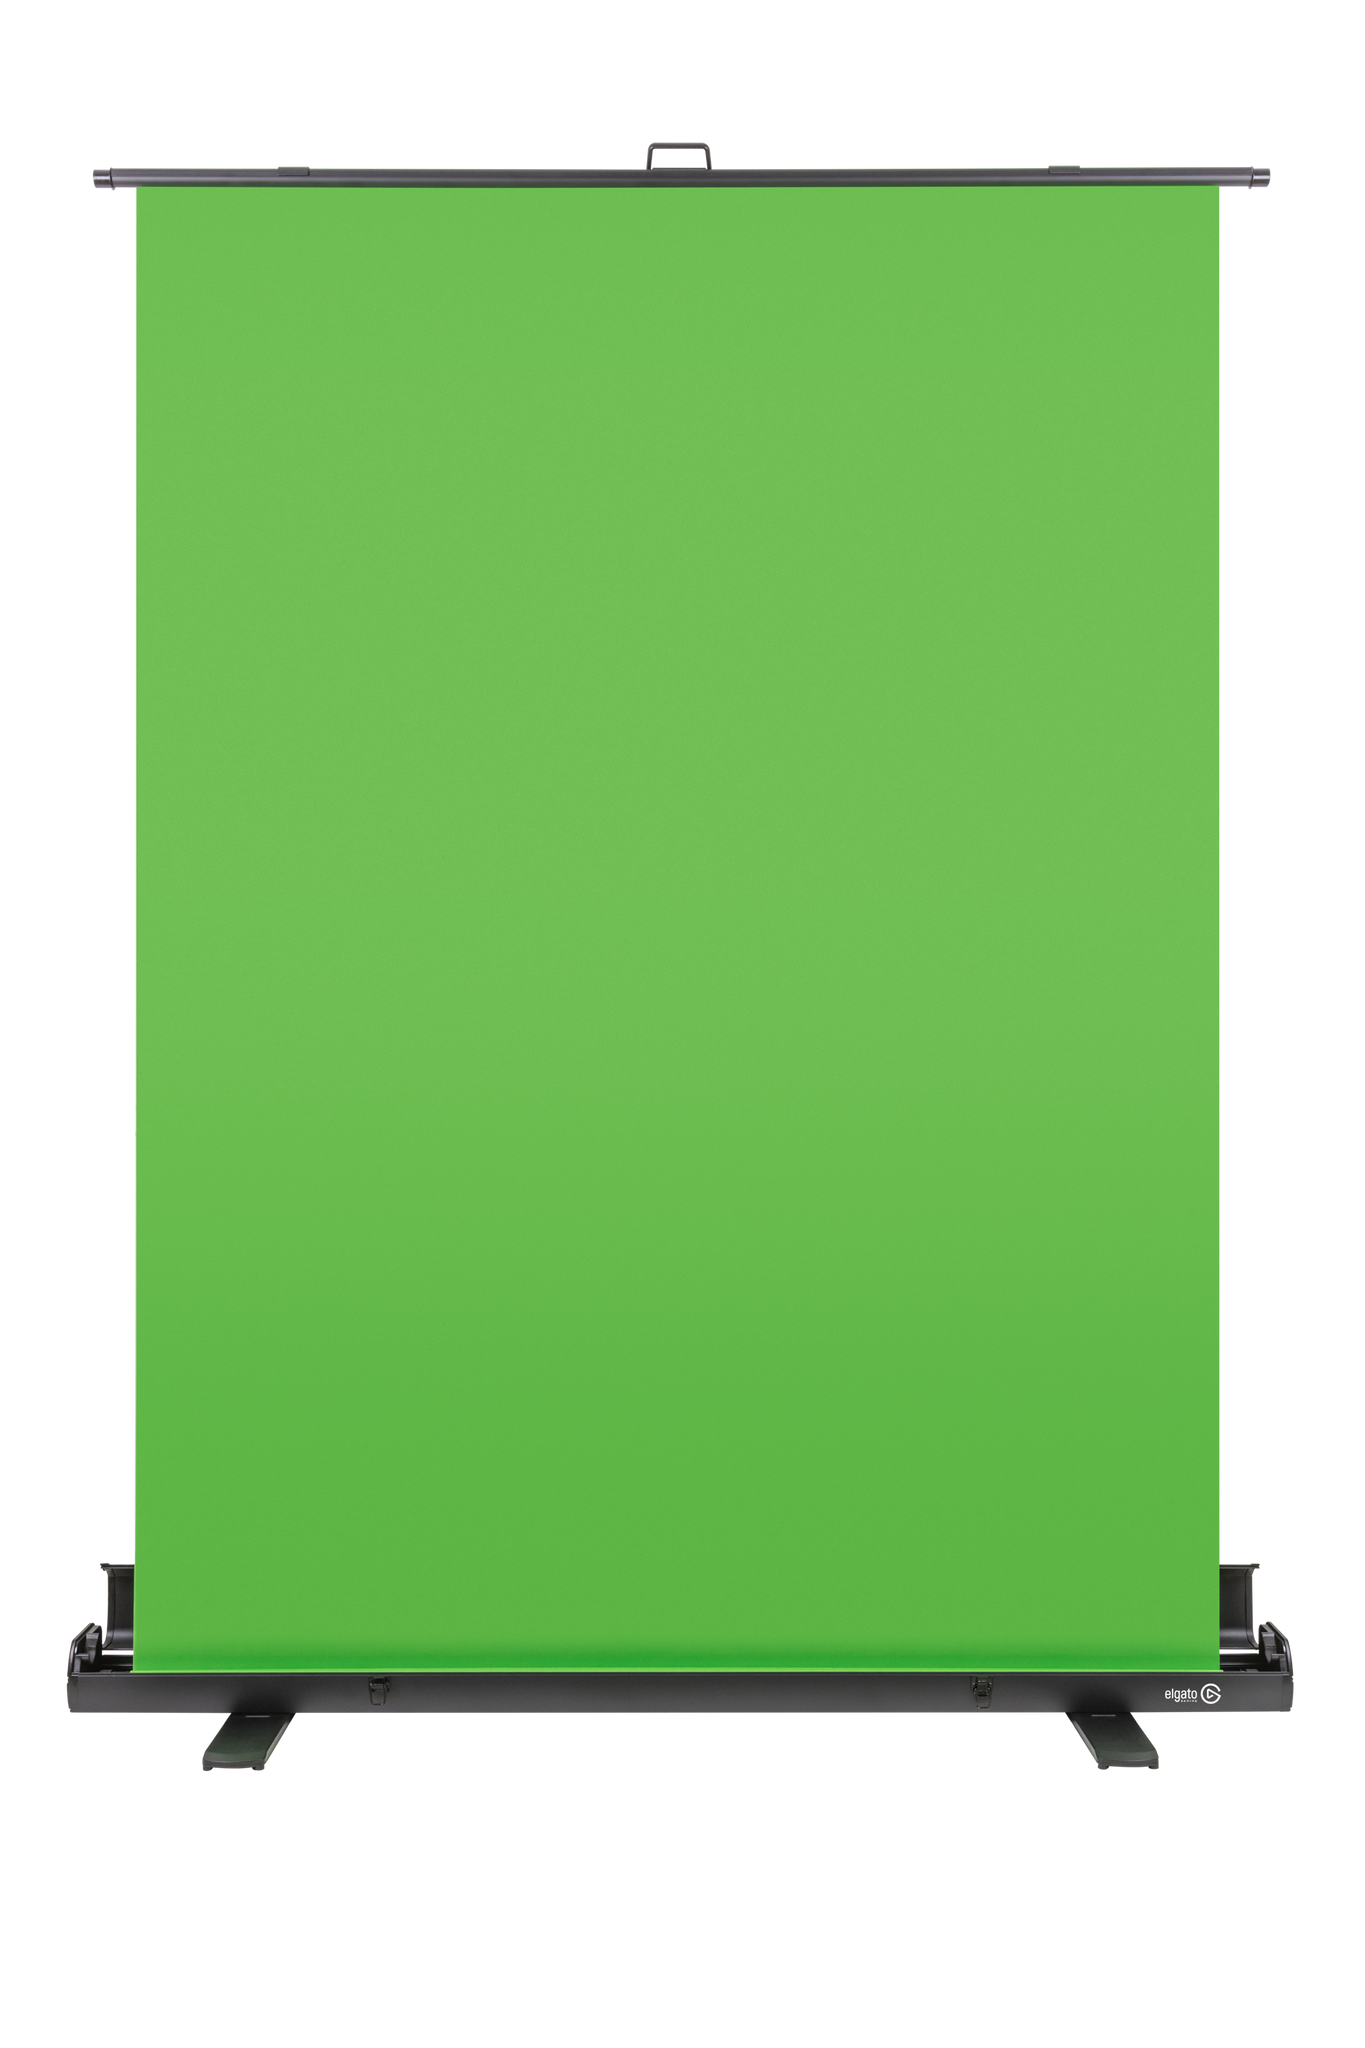 Elgato - Green Screen